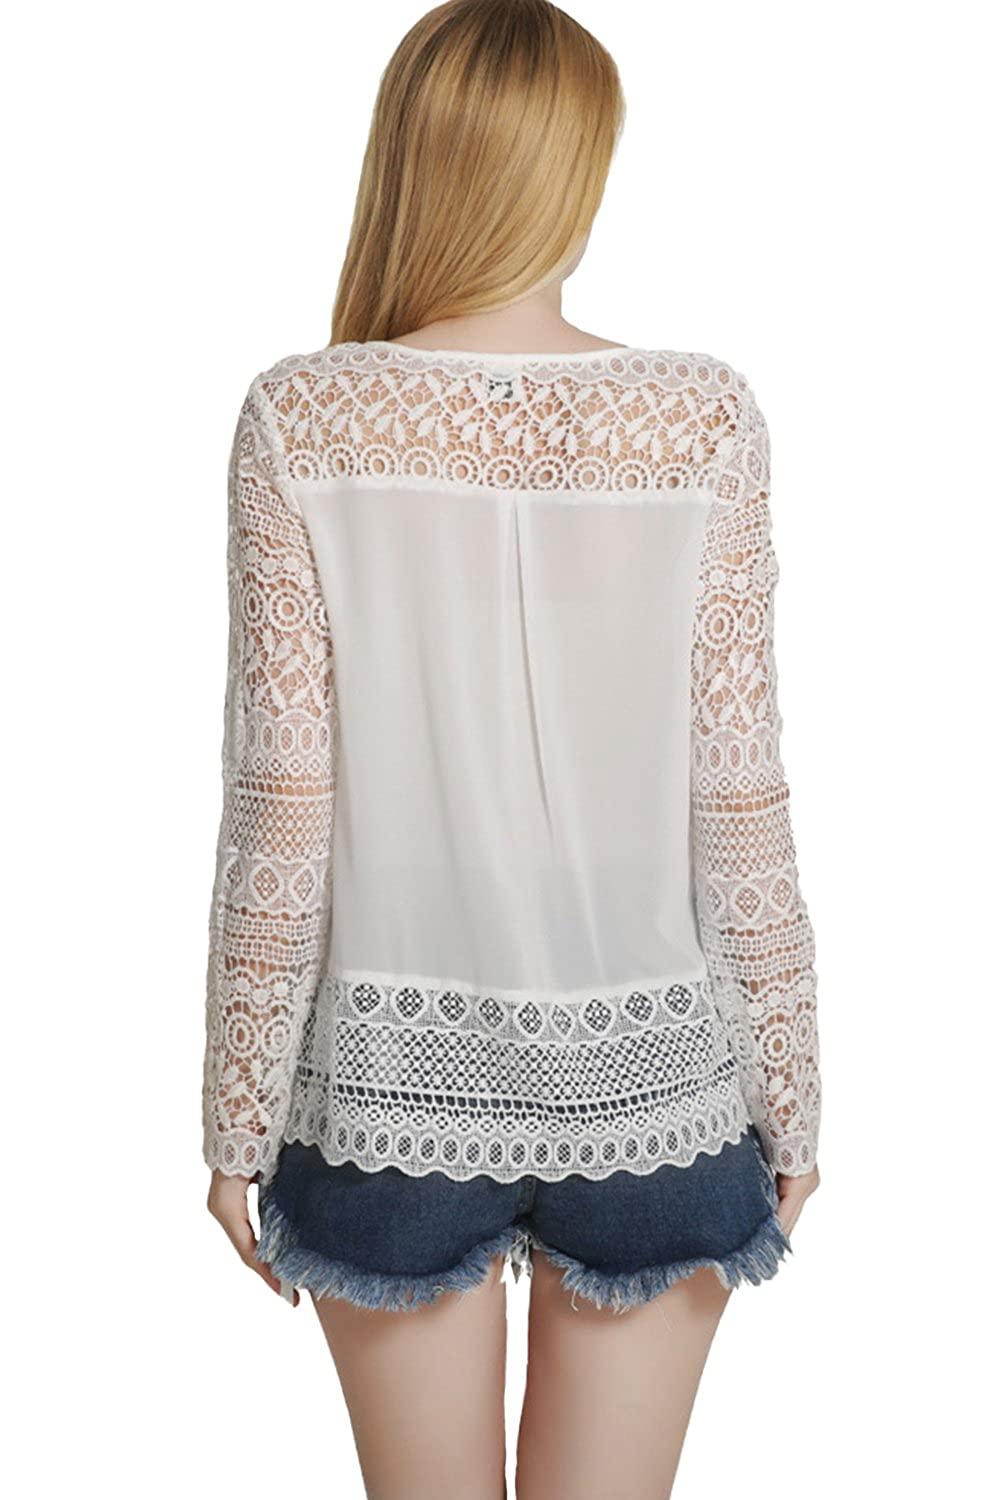 c708cc9f37ec6 Unomatch Women Crochet Lace Top Shirt and Blouse White at Amazon Women's  Clothing store: